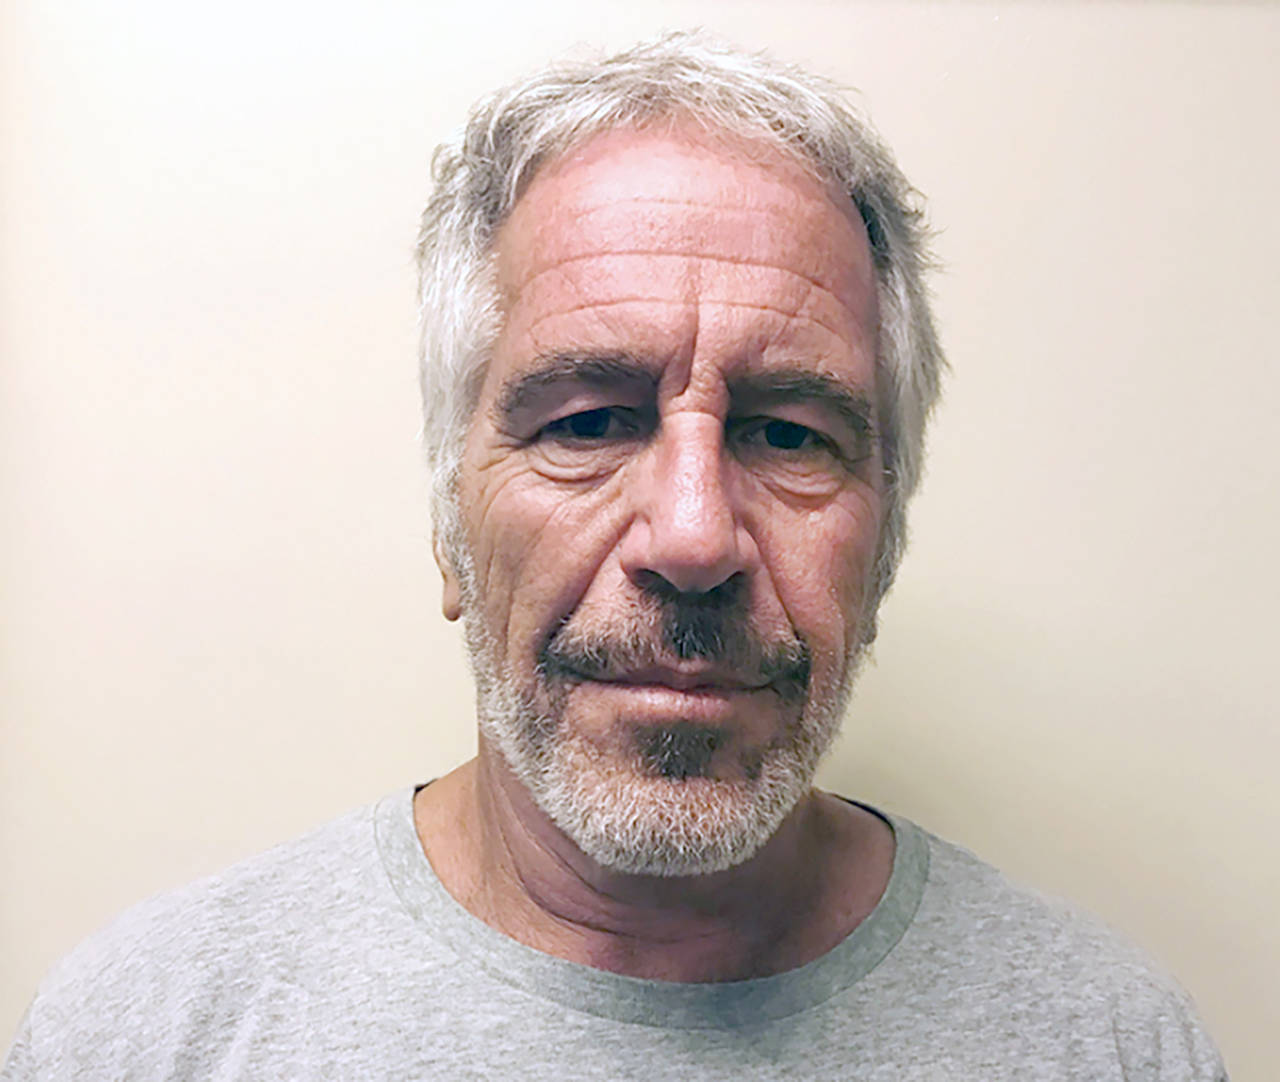 Jeffrey Epstein has died by suicide while awaiting trial on sex-trafficking charges. (New York State Sex Offender Registry via AP, File)